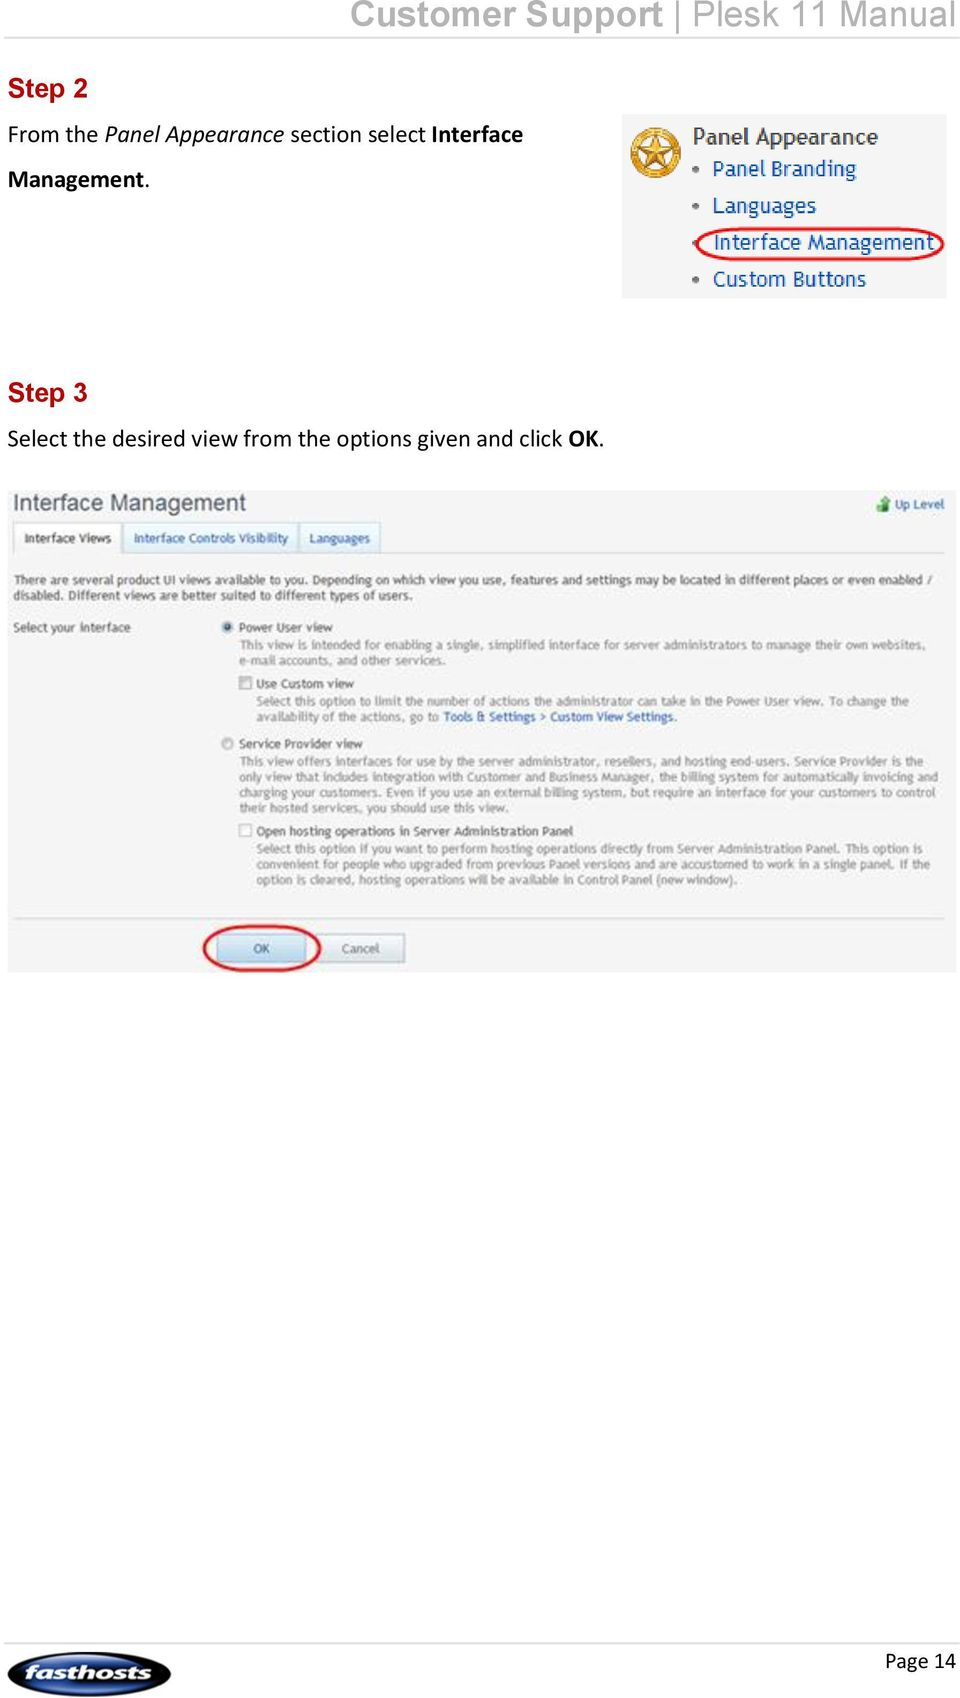 Customer Support Plesk 11 Manual Step 3